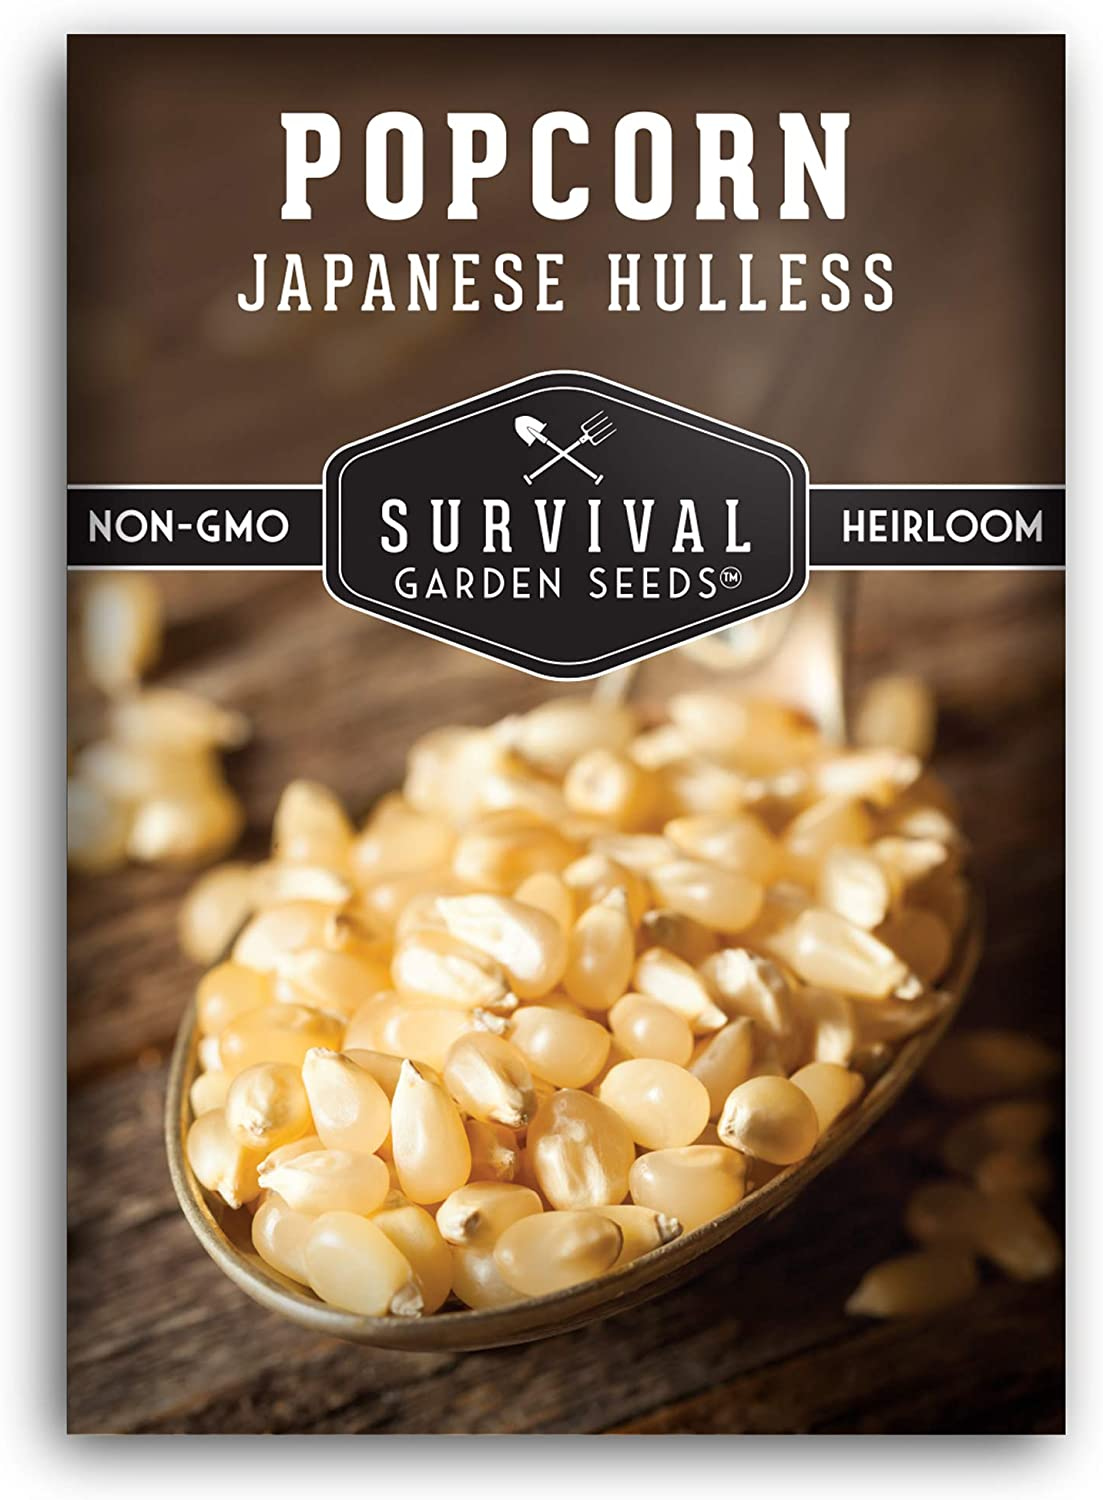 Survival Garden Seeds - Japanese Hulless Popcorn Seed for Planting - Packet with Instructions to Plant and Grow in Your Home Vegetable Garden - Non-GMO Heirloom Variety